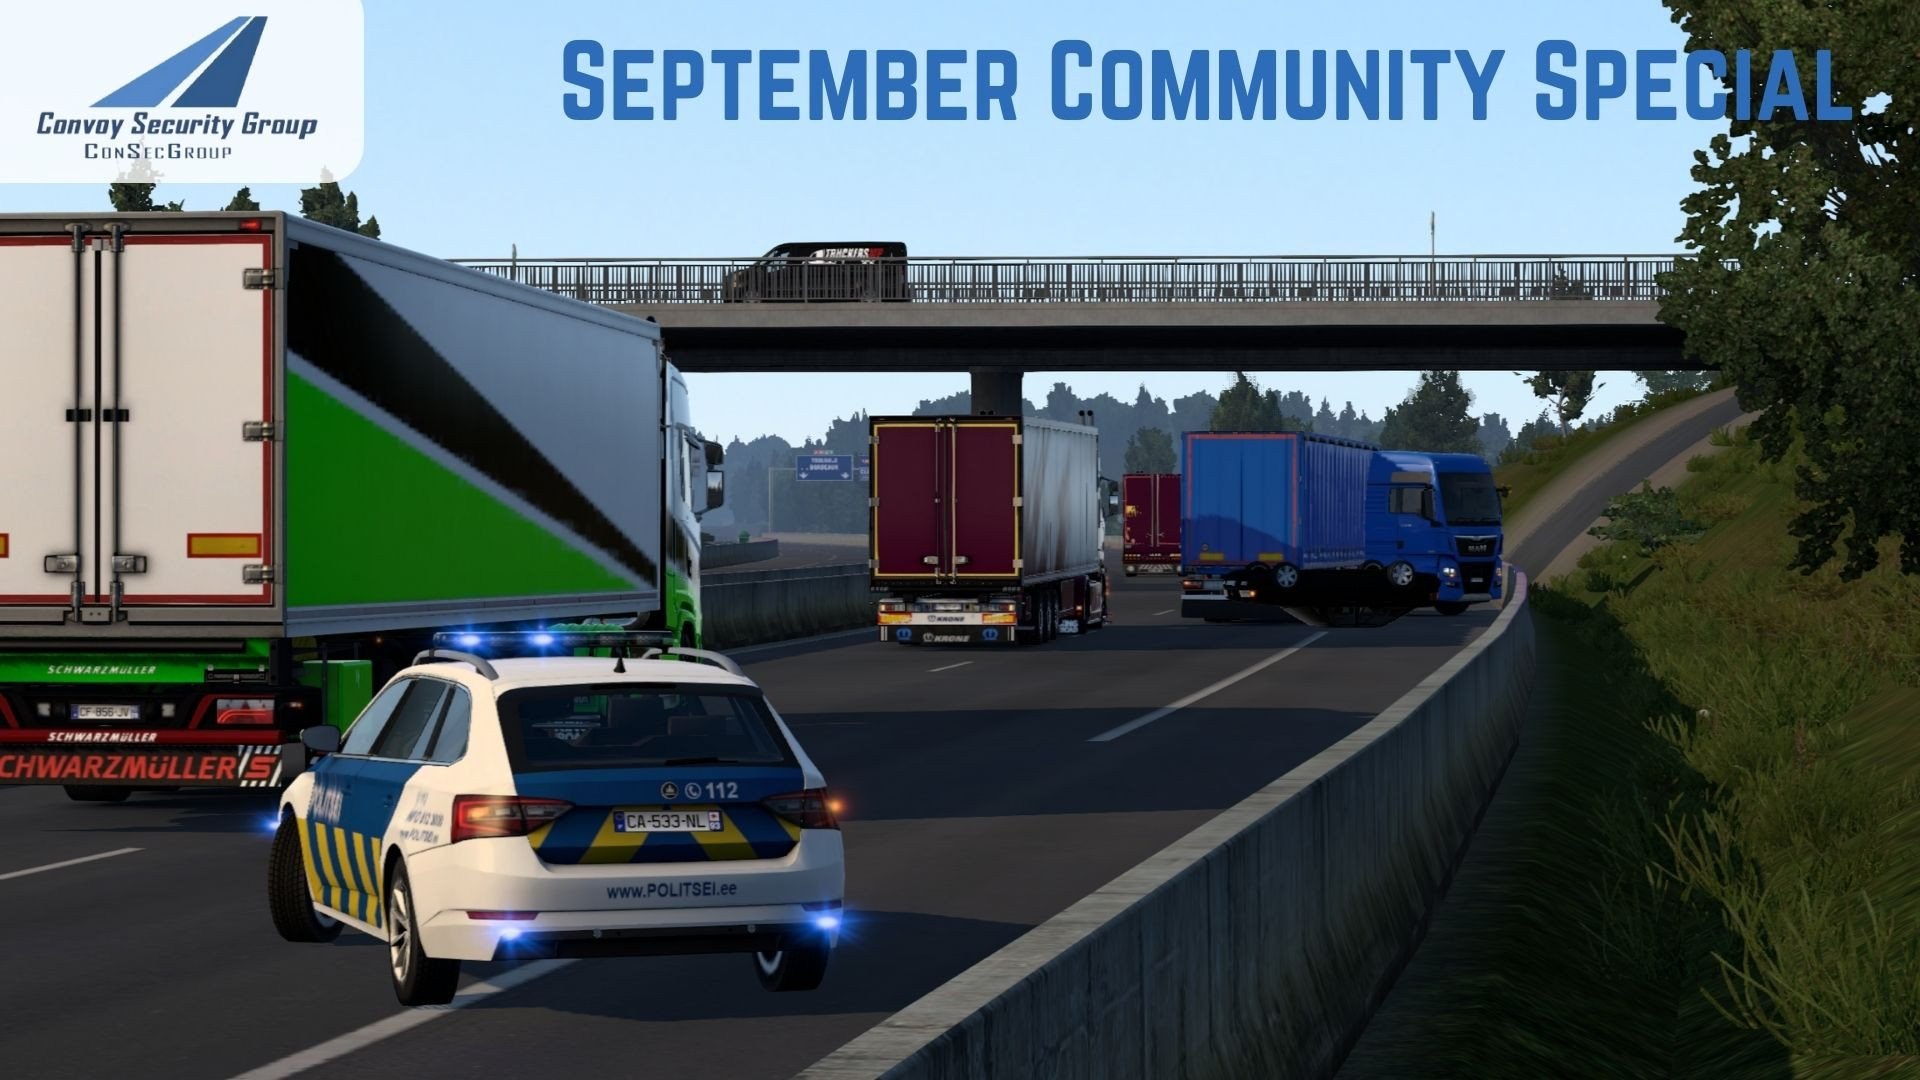 🚓🚚 ConSecGroup Community Special September with Real Op's 🚚🚓